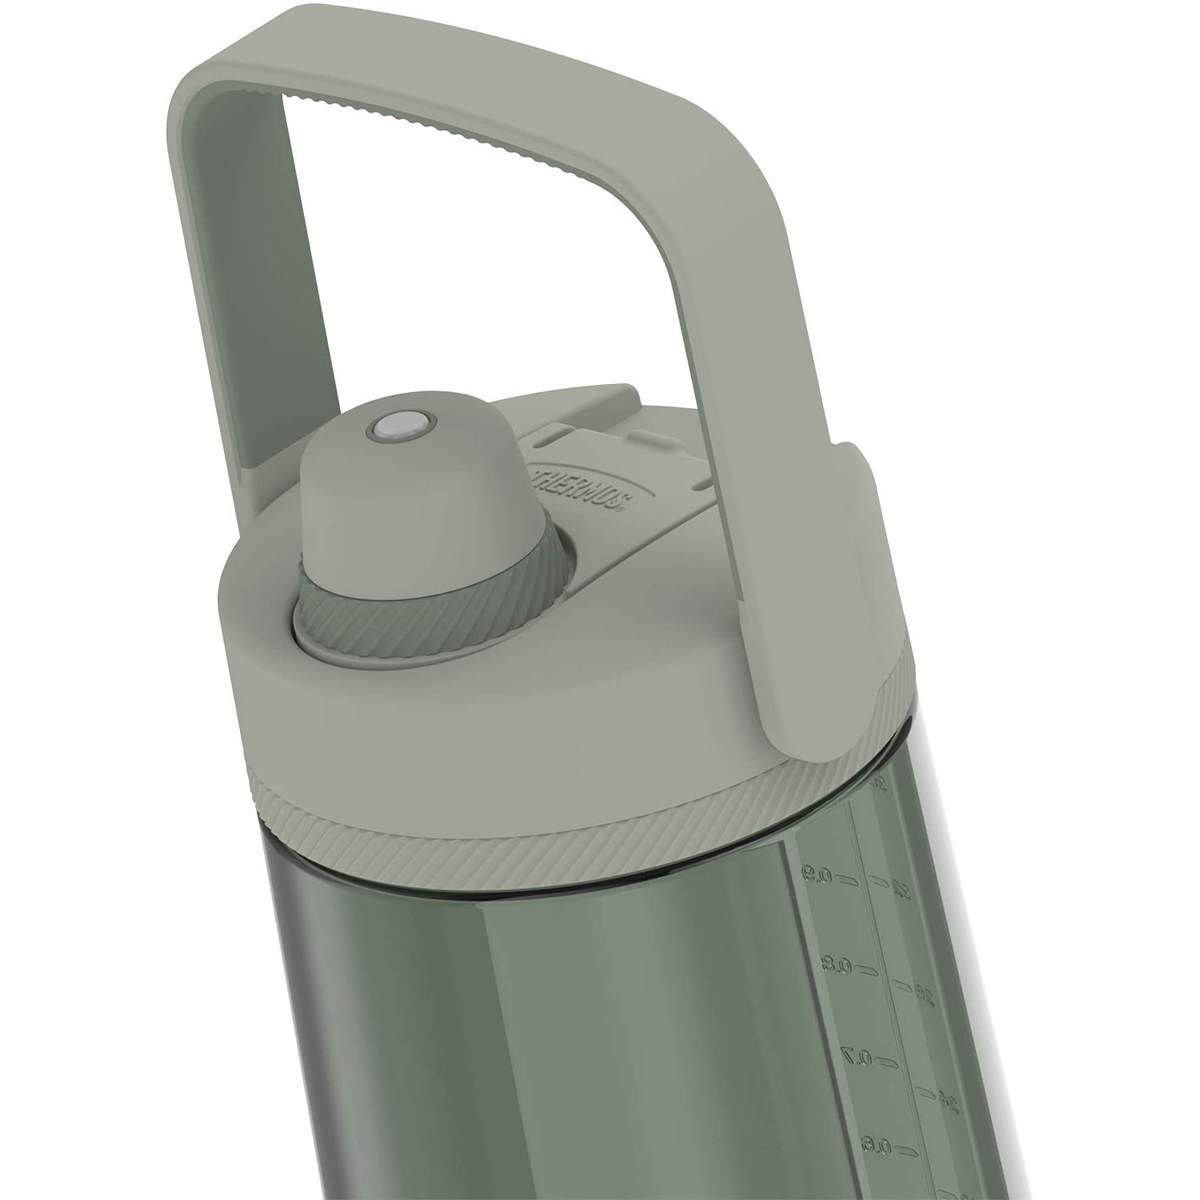 Thermos-40-oz-Guardian-Collection-Hard-Plastic-Hydration-Bottle-with-Spout thumbnail 14